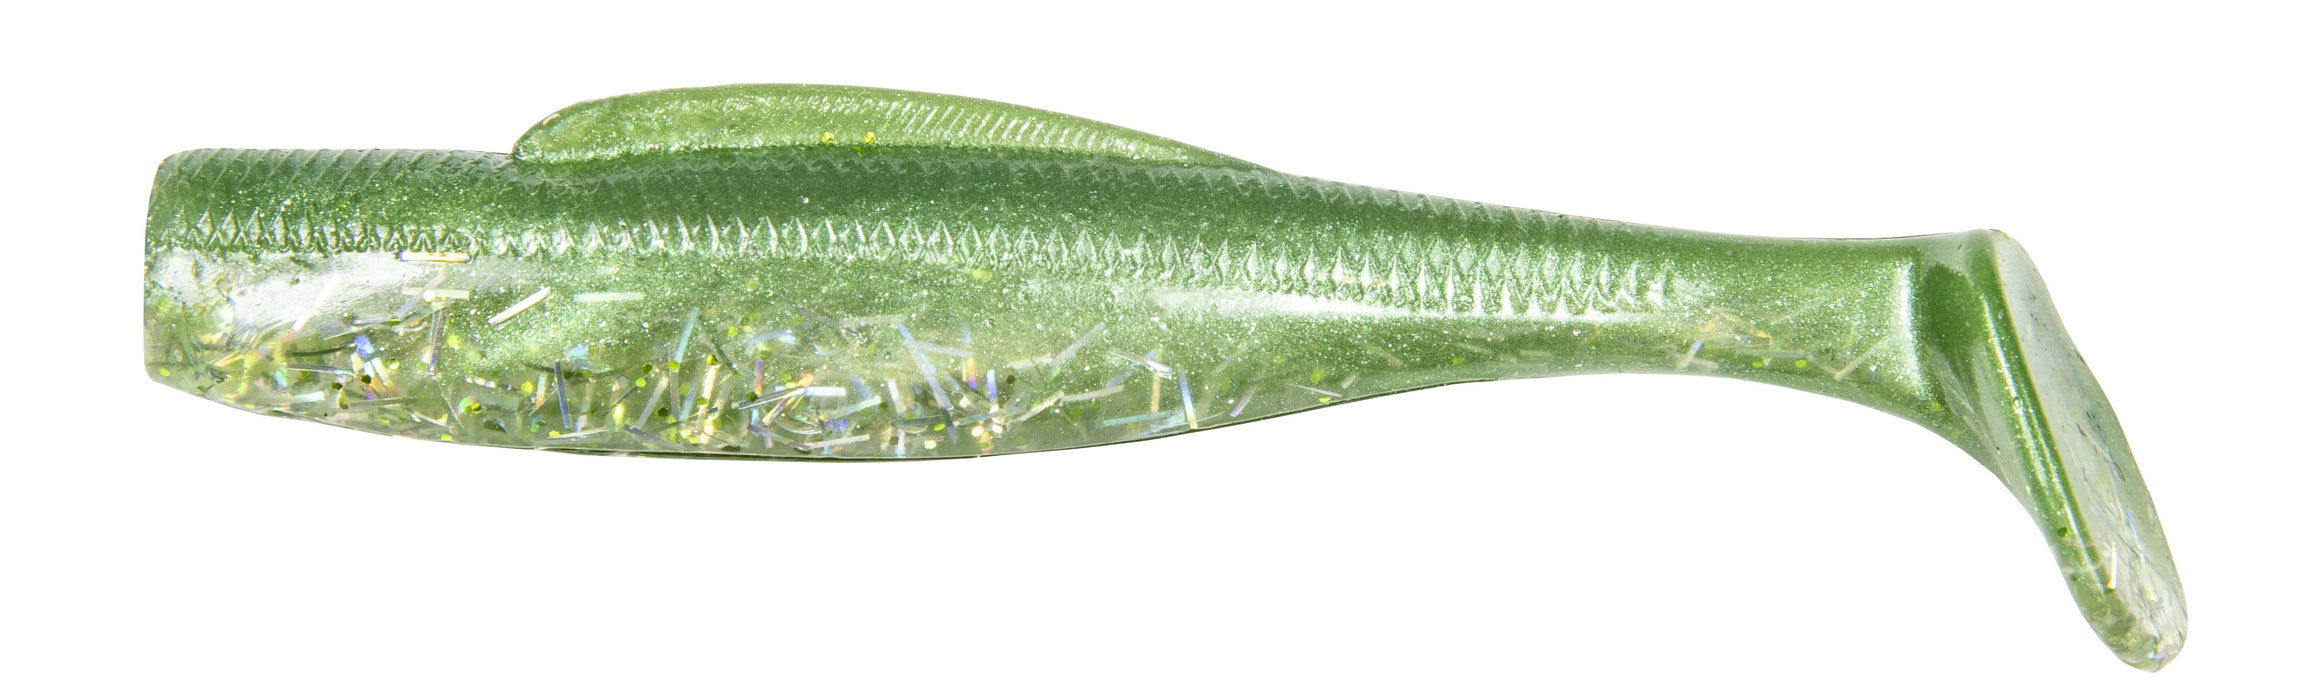 Z-Man DieZel MinnowZ 4 inch Soft Paddle Tail Swimbait 5 pack